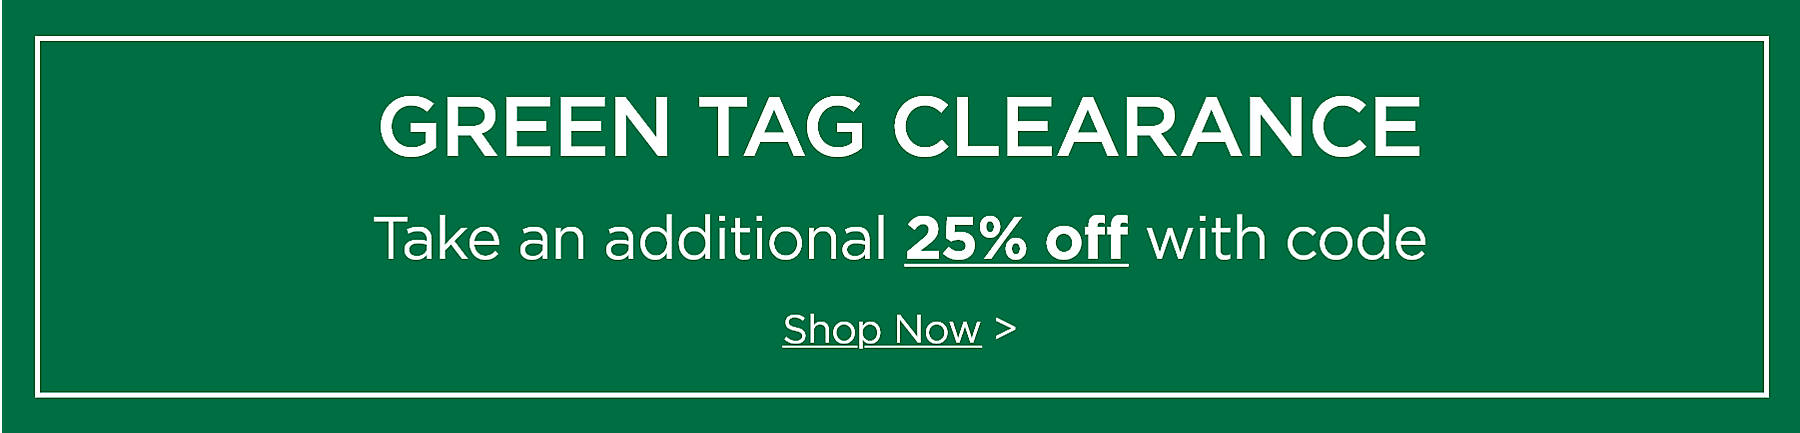 Green Tag Clearance Take an additional 25% off with code Shop Now